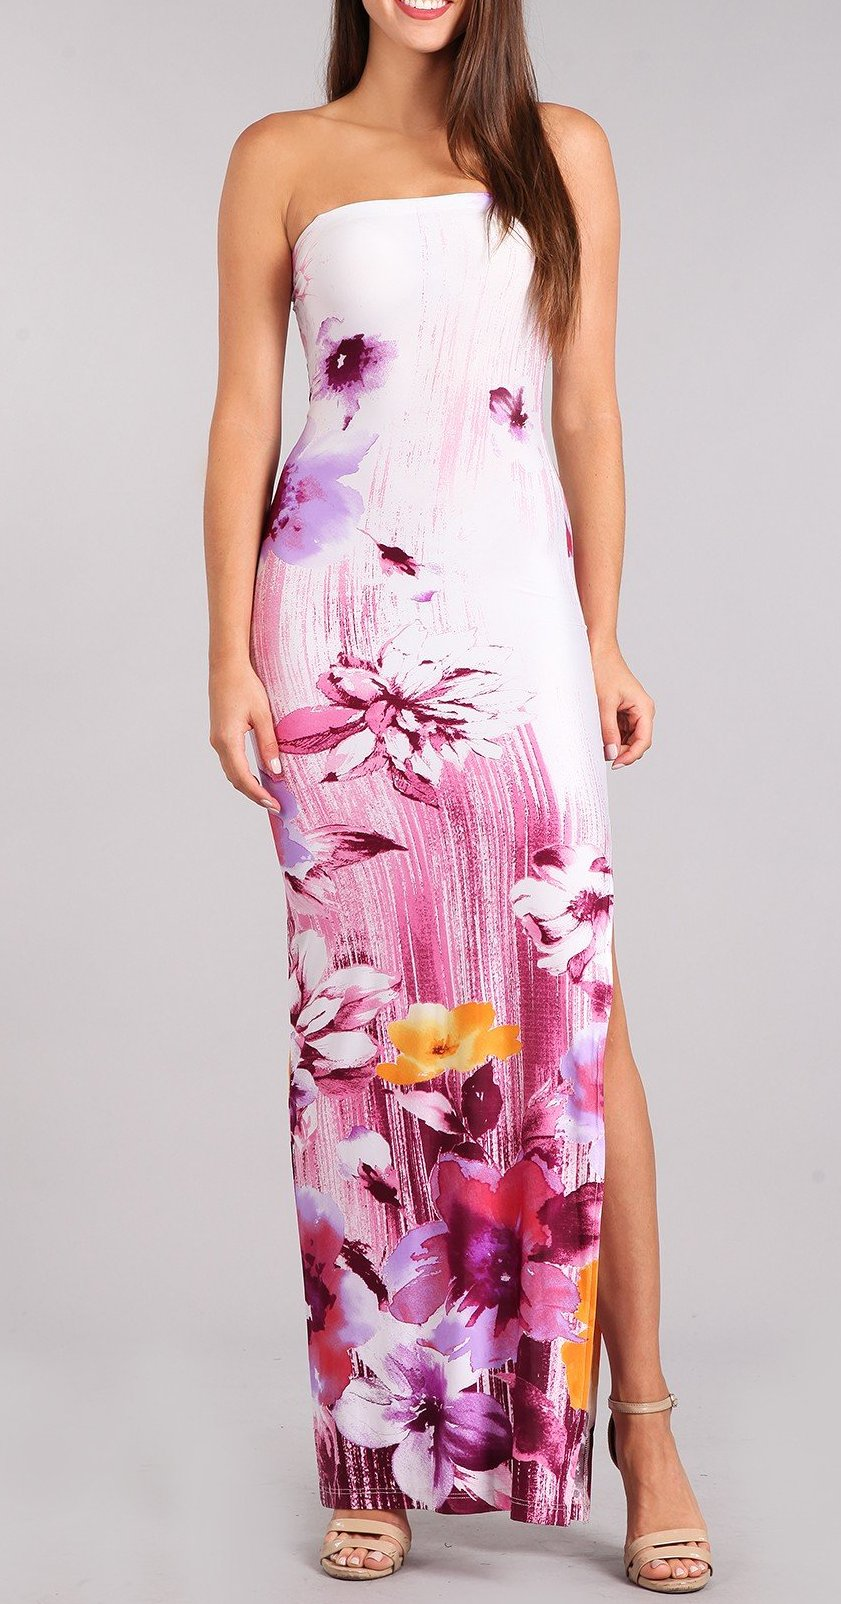 Painted Stay-Cation Strapless Dress